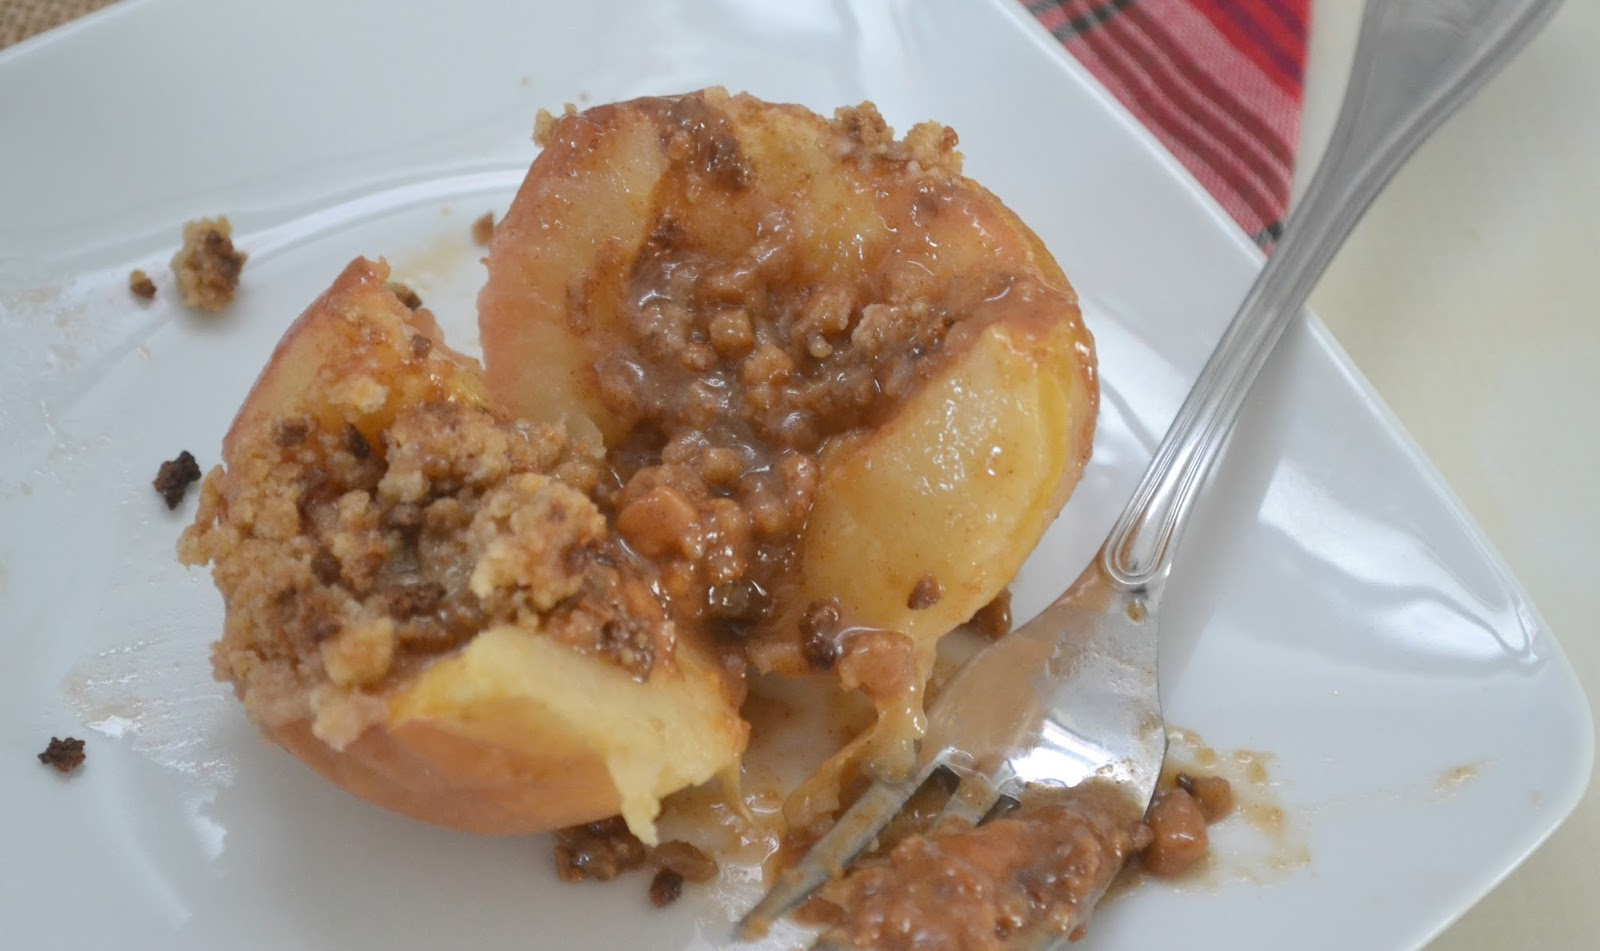 , creative apple desserts, Baked Apples, Baked Caramel Crumble Apples ...